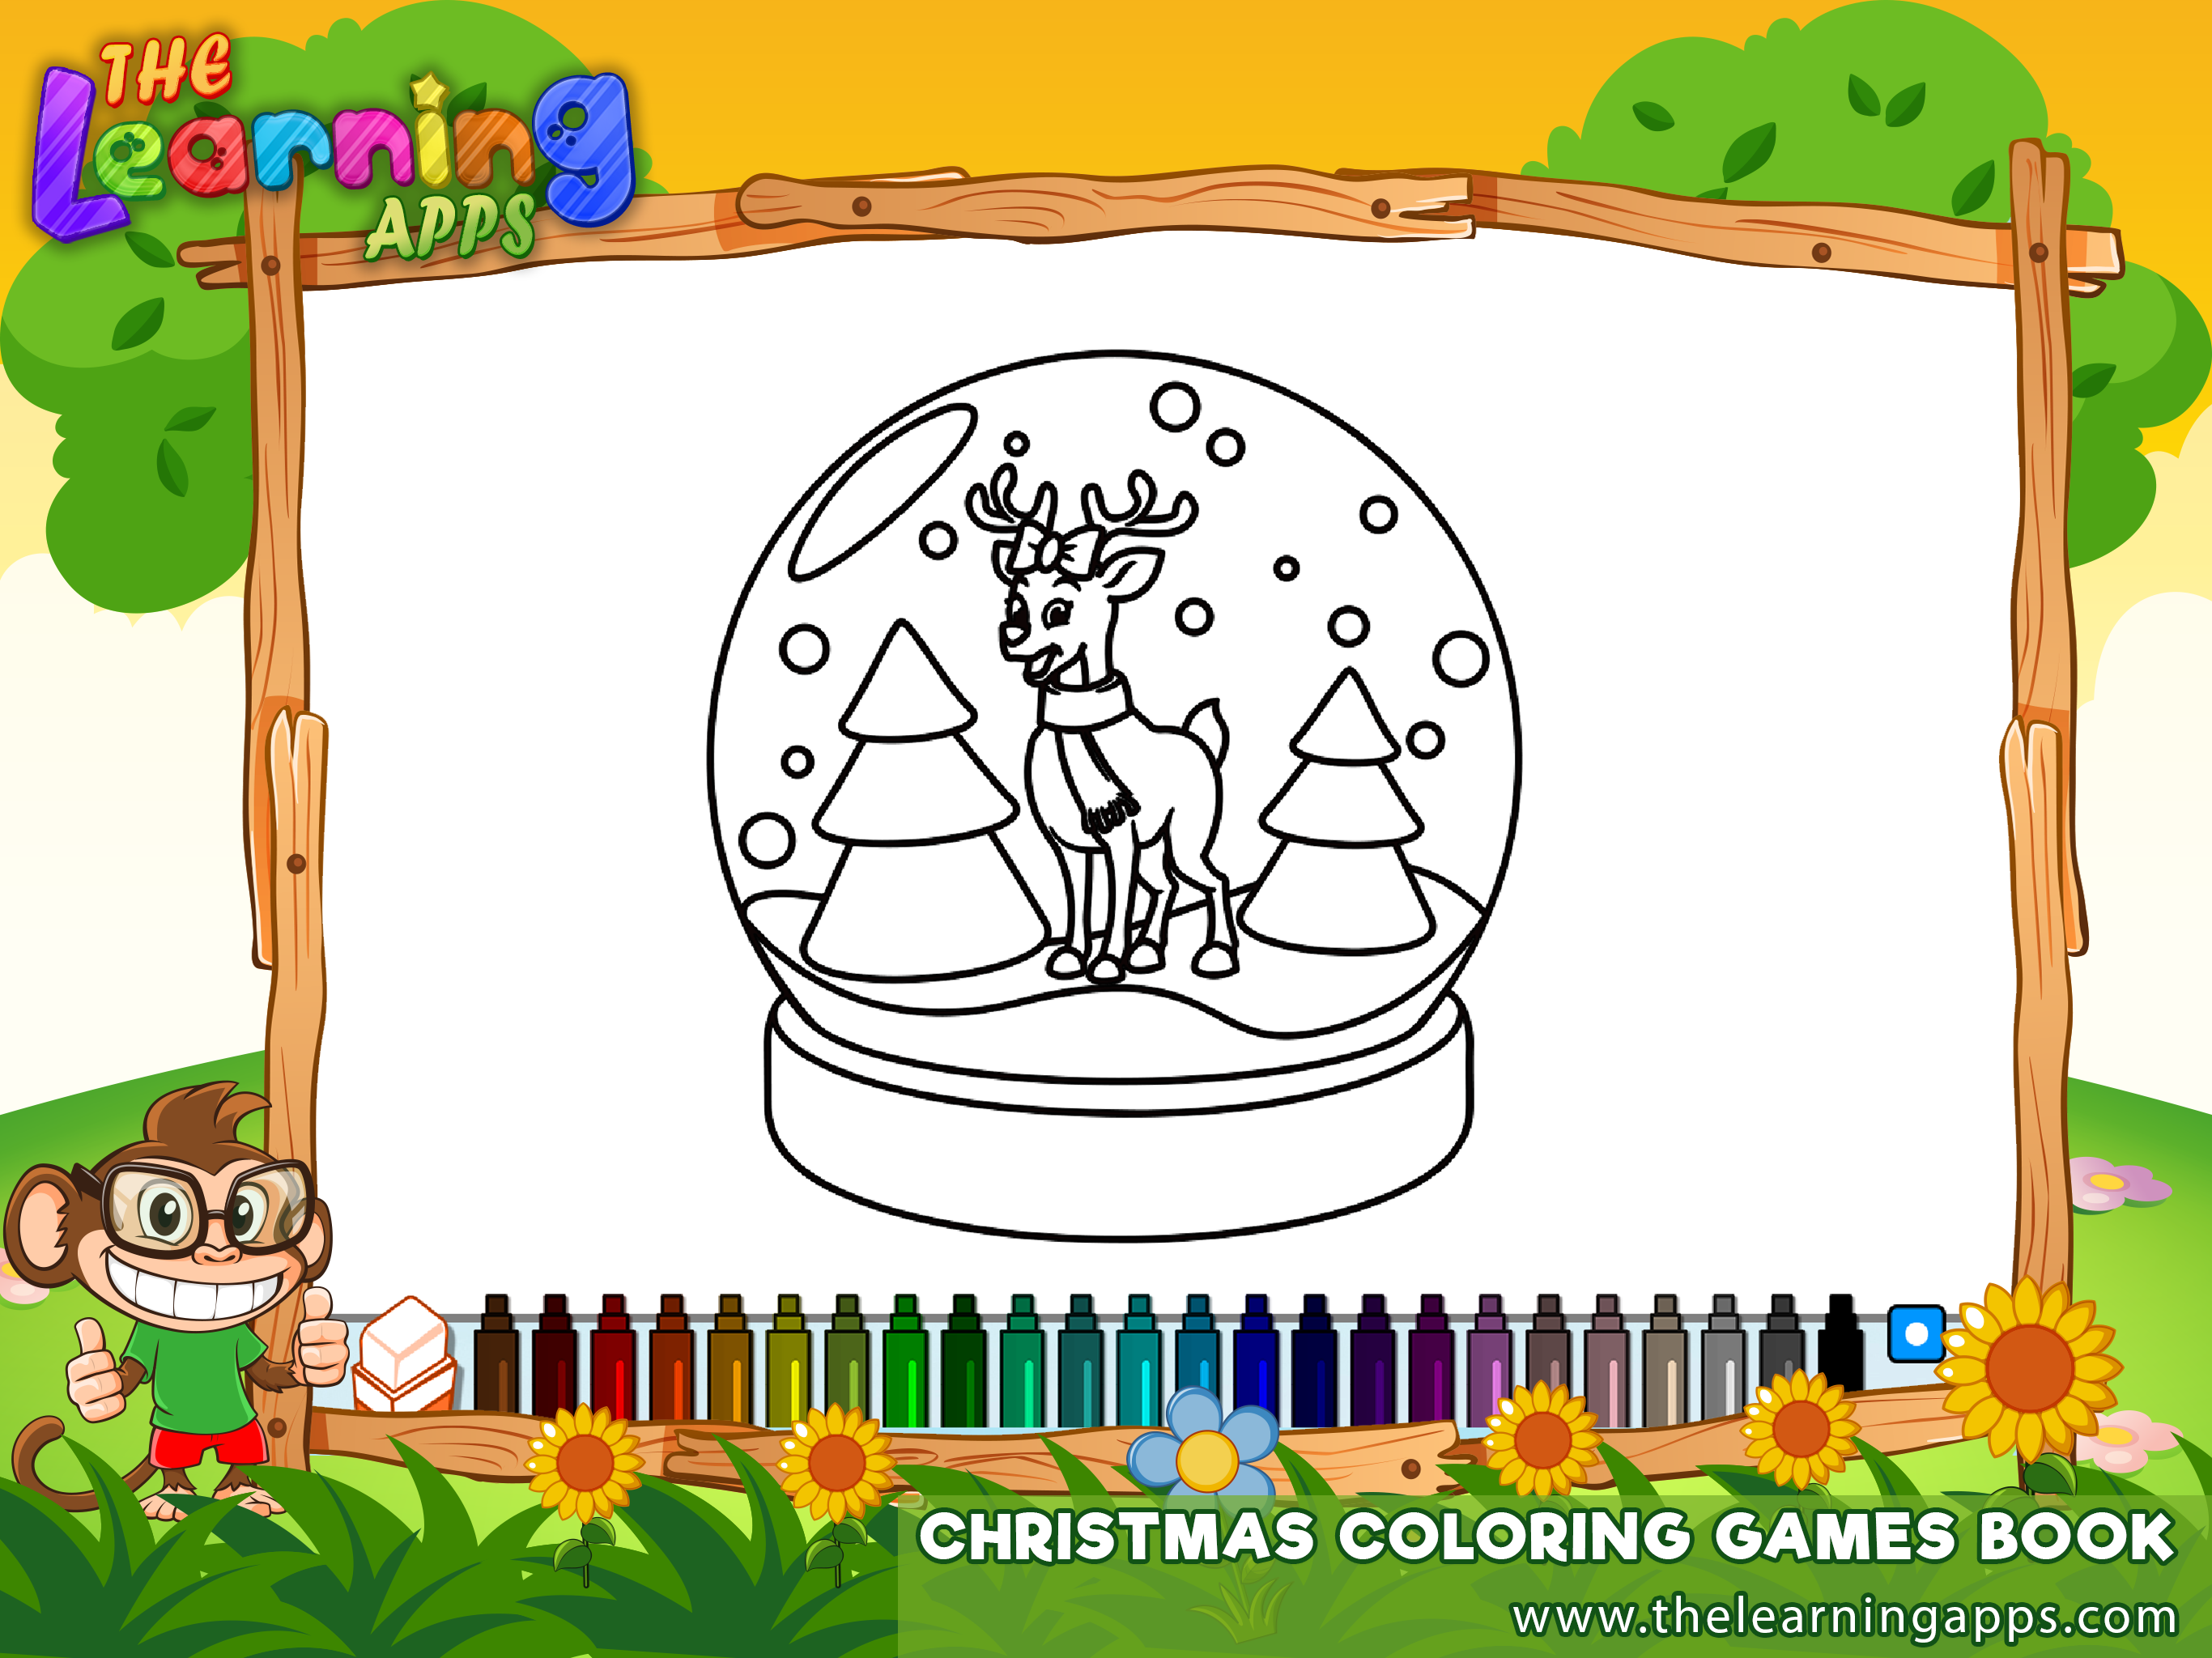 This Christmas Coloring Games Book Will Help Your Child To